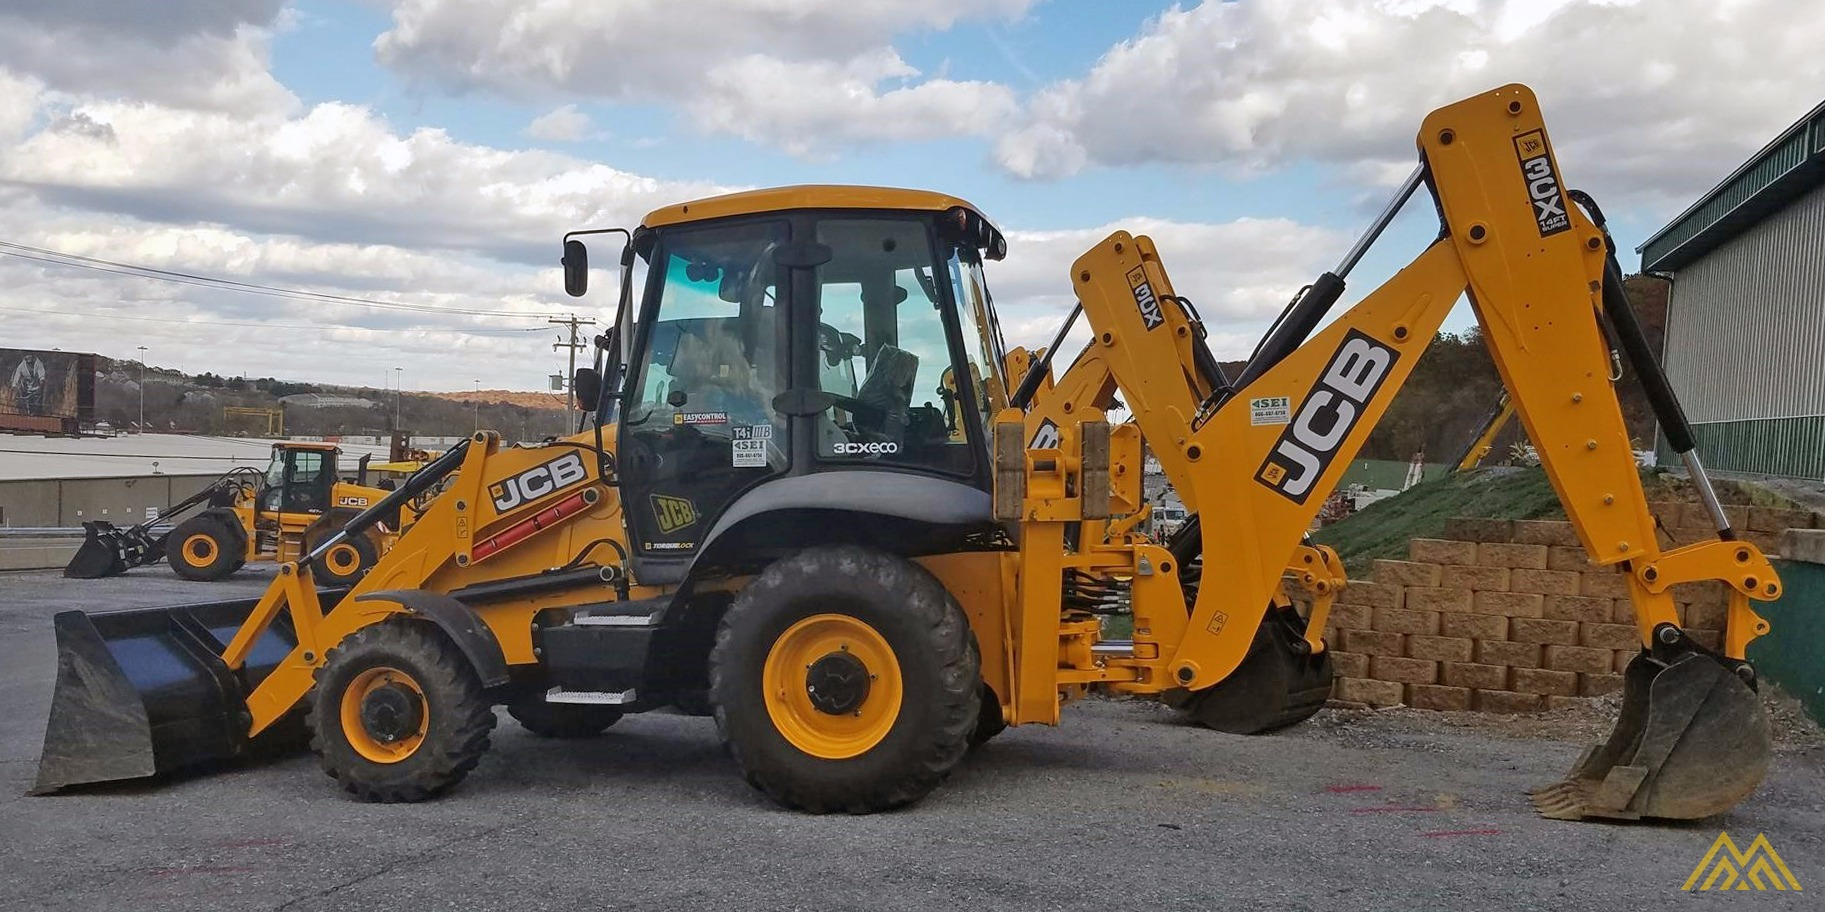 JCB 3CX14 Backhoe Loader 2